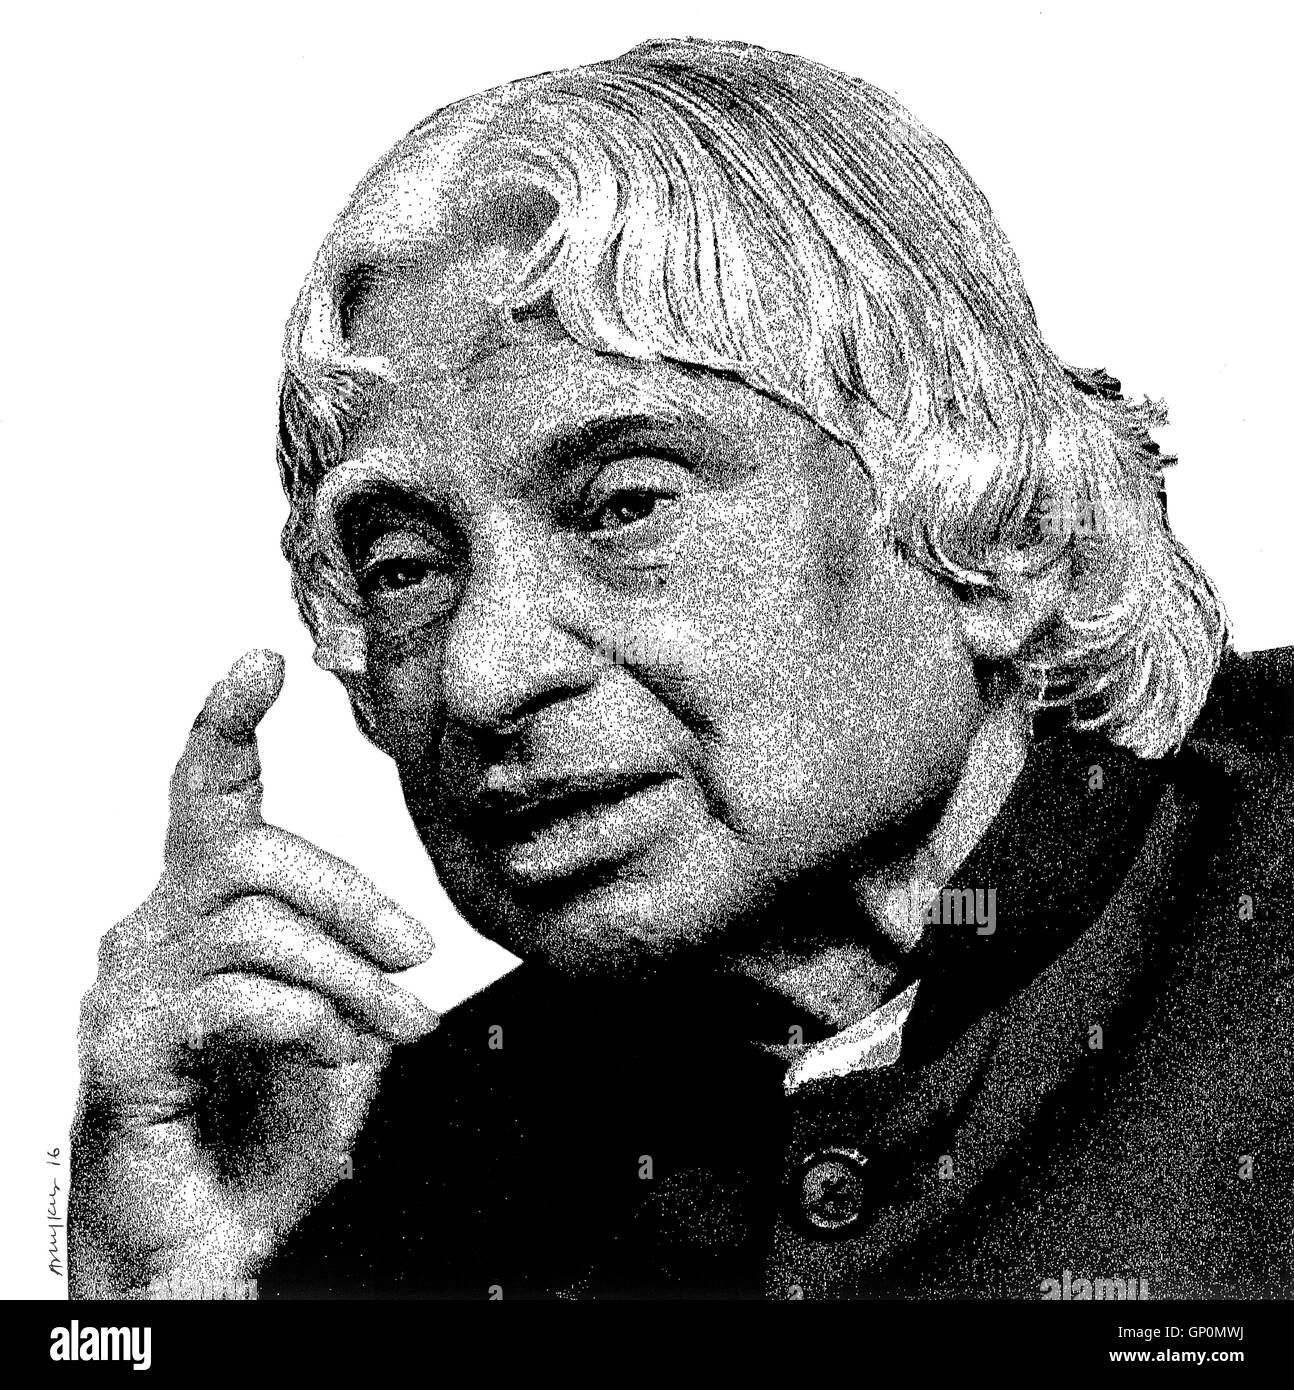 Indian president dr avul pakir jainulabdeen abdul kalam drawing india asia